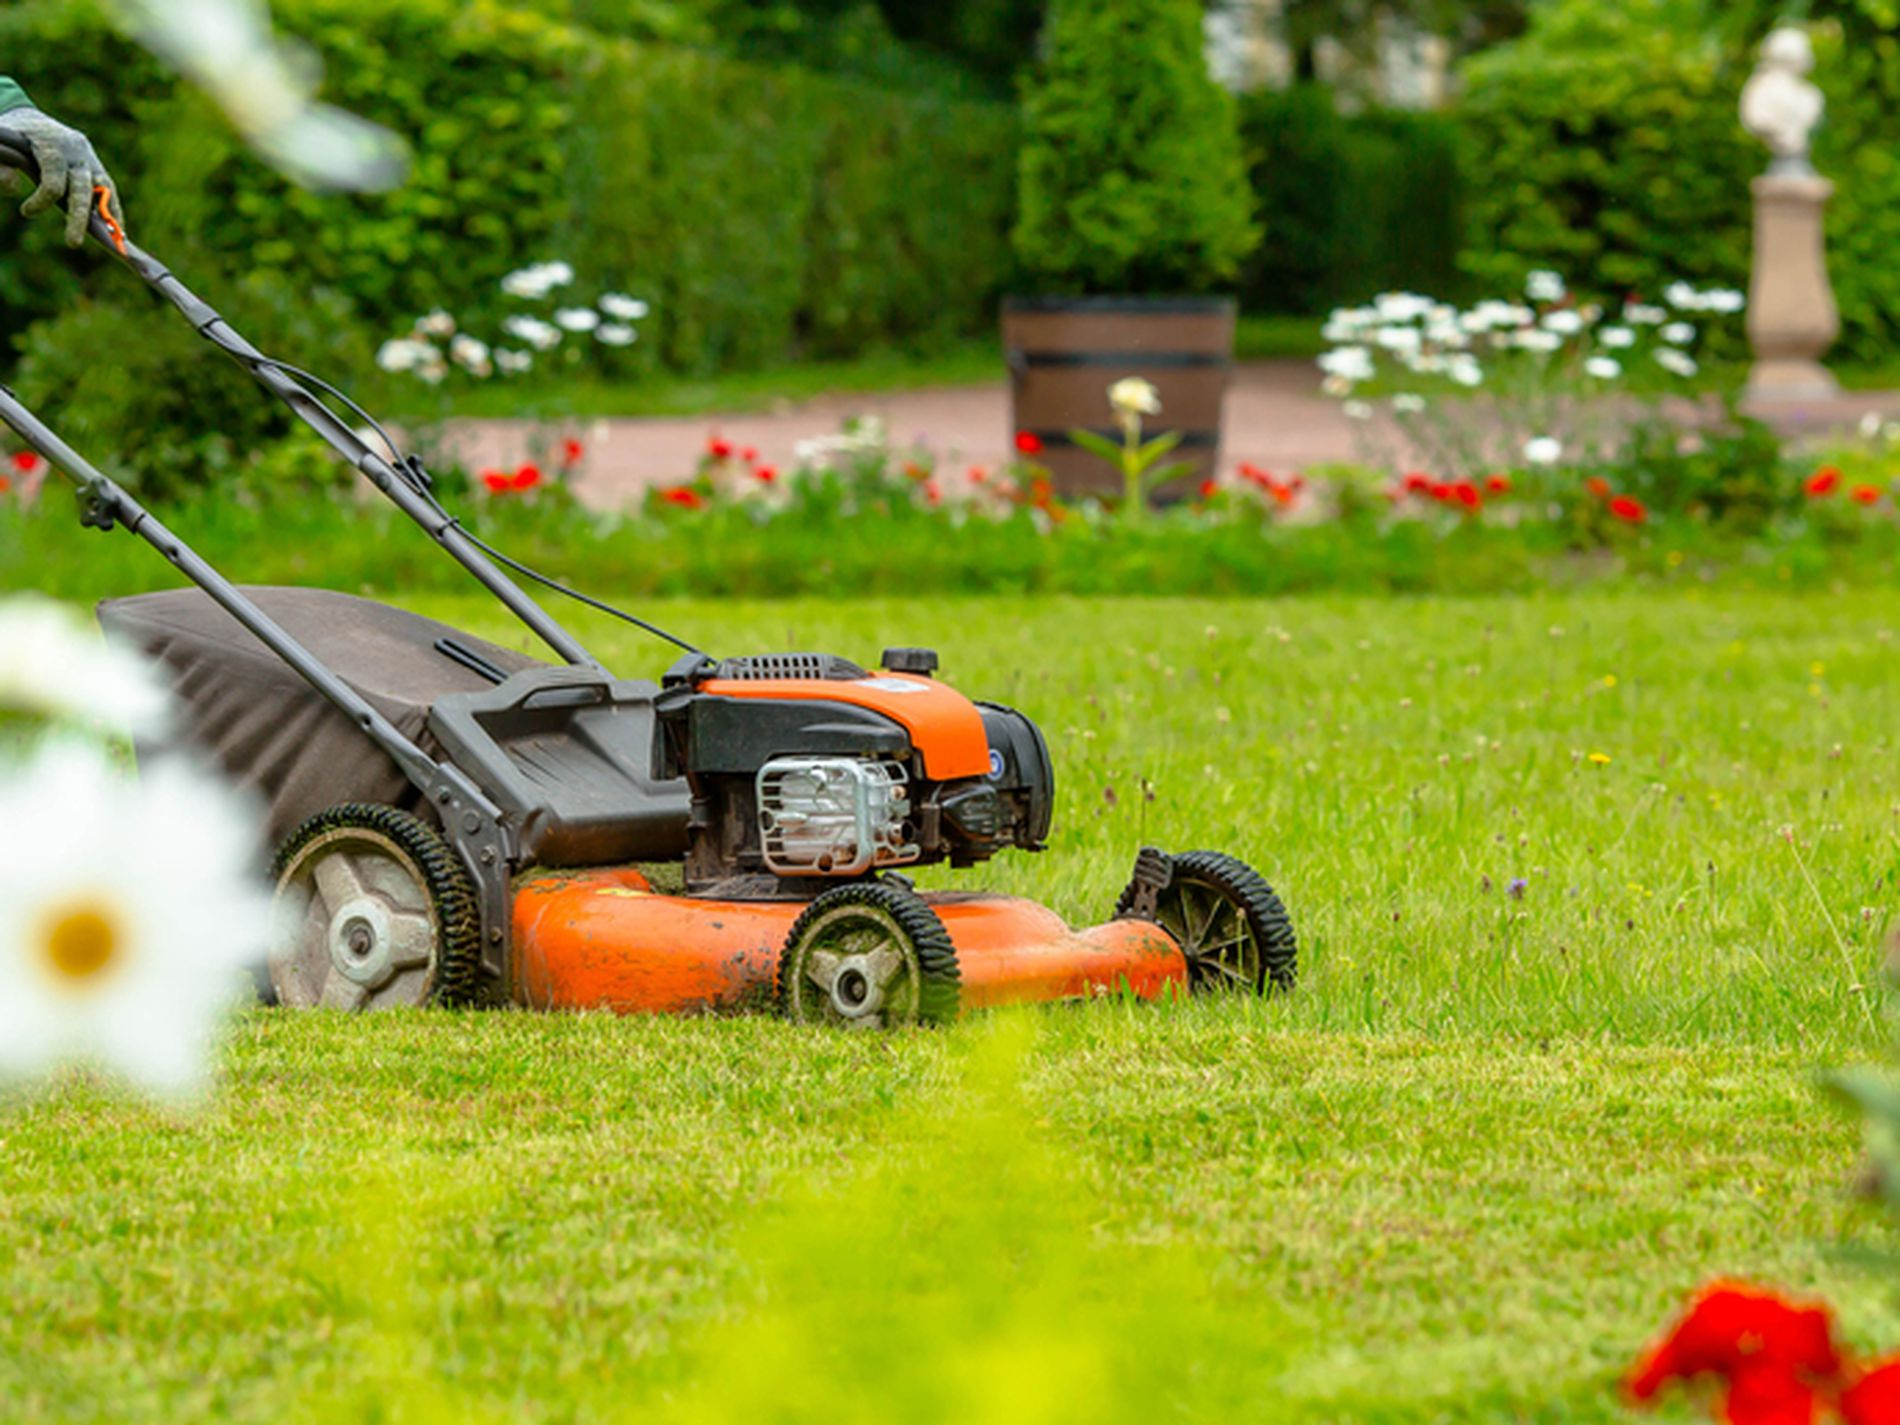 Garden Maintenance and Lawn Mowing Business for Sale